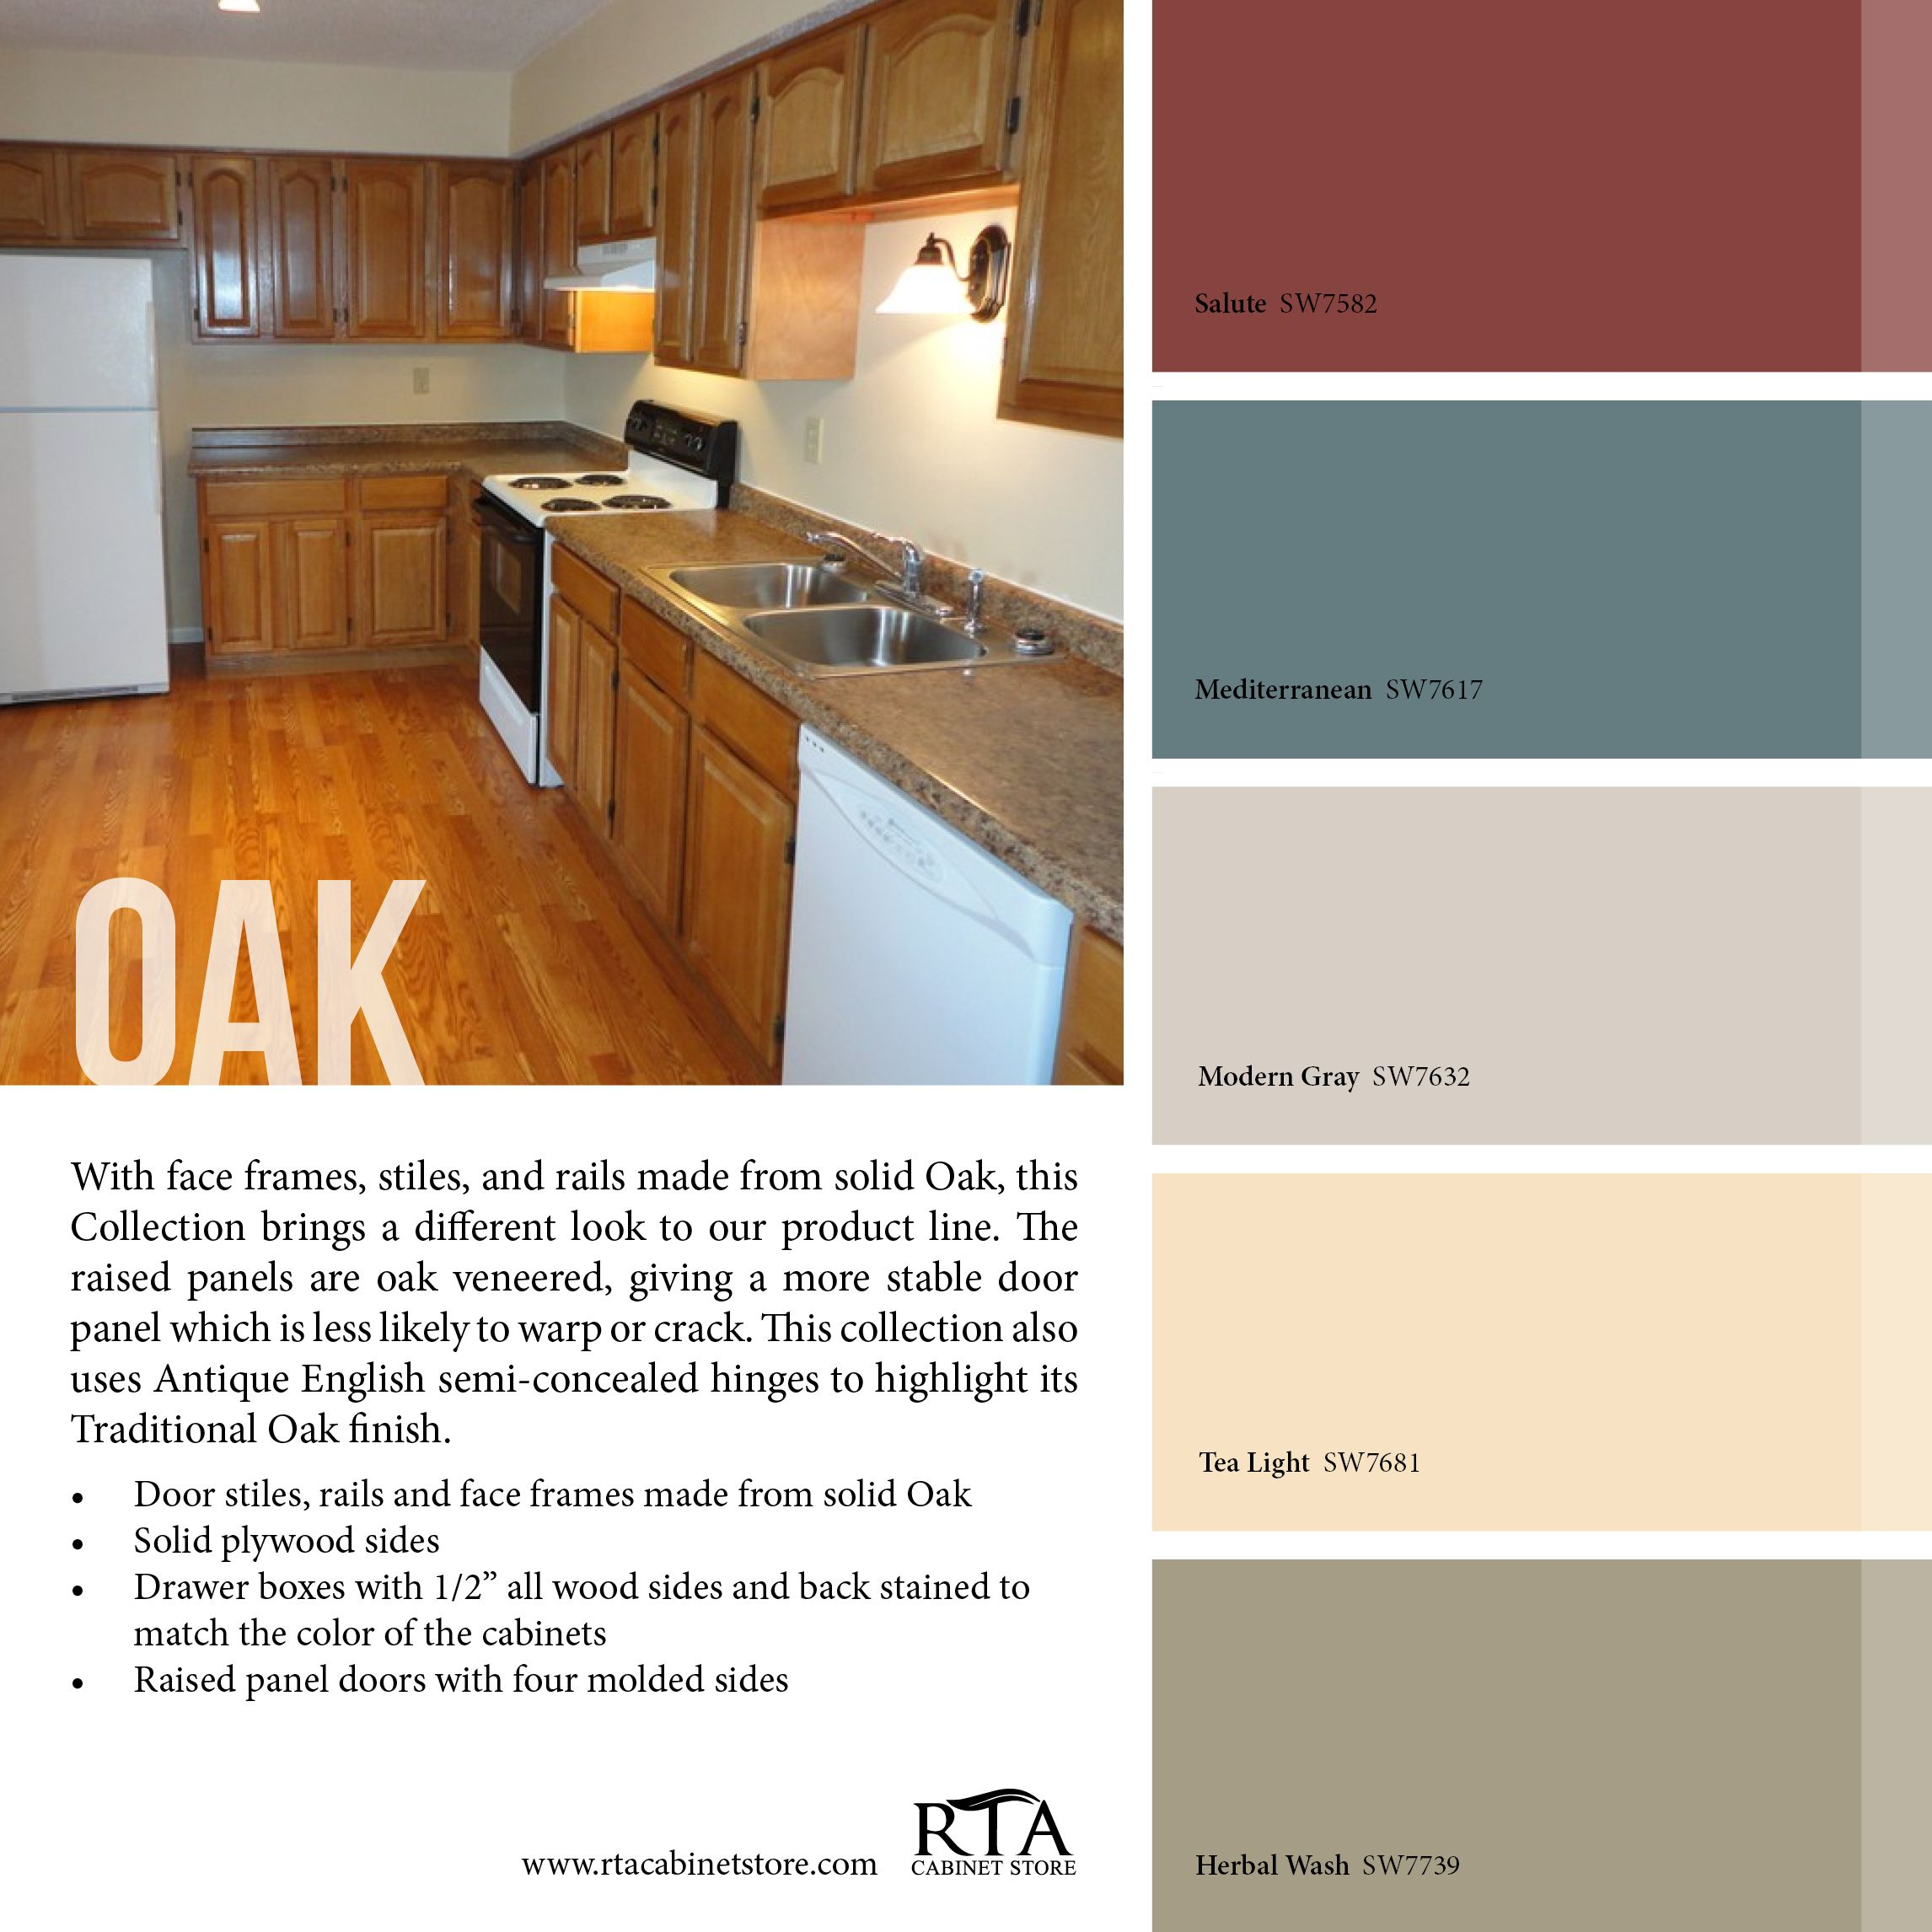 Color palette to go with oak kitchen cabinet line- for those with ...